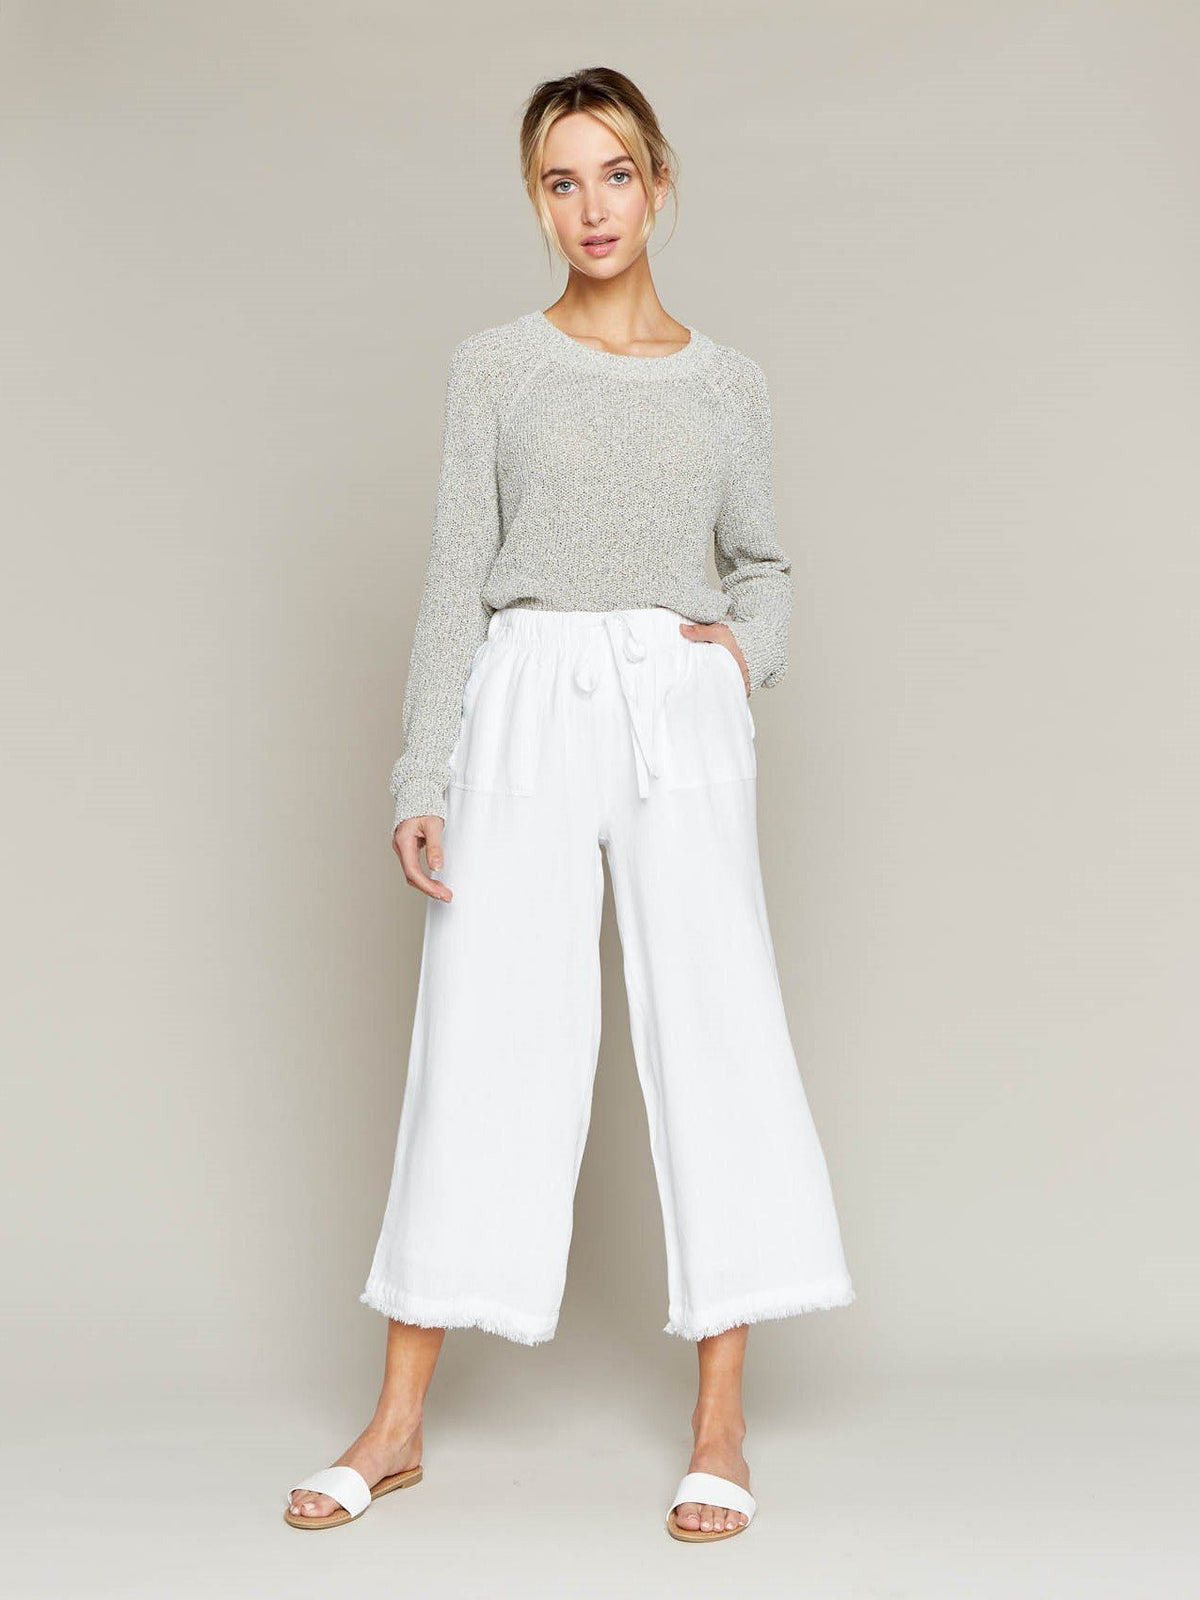 Barefoot Culotte